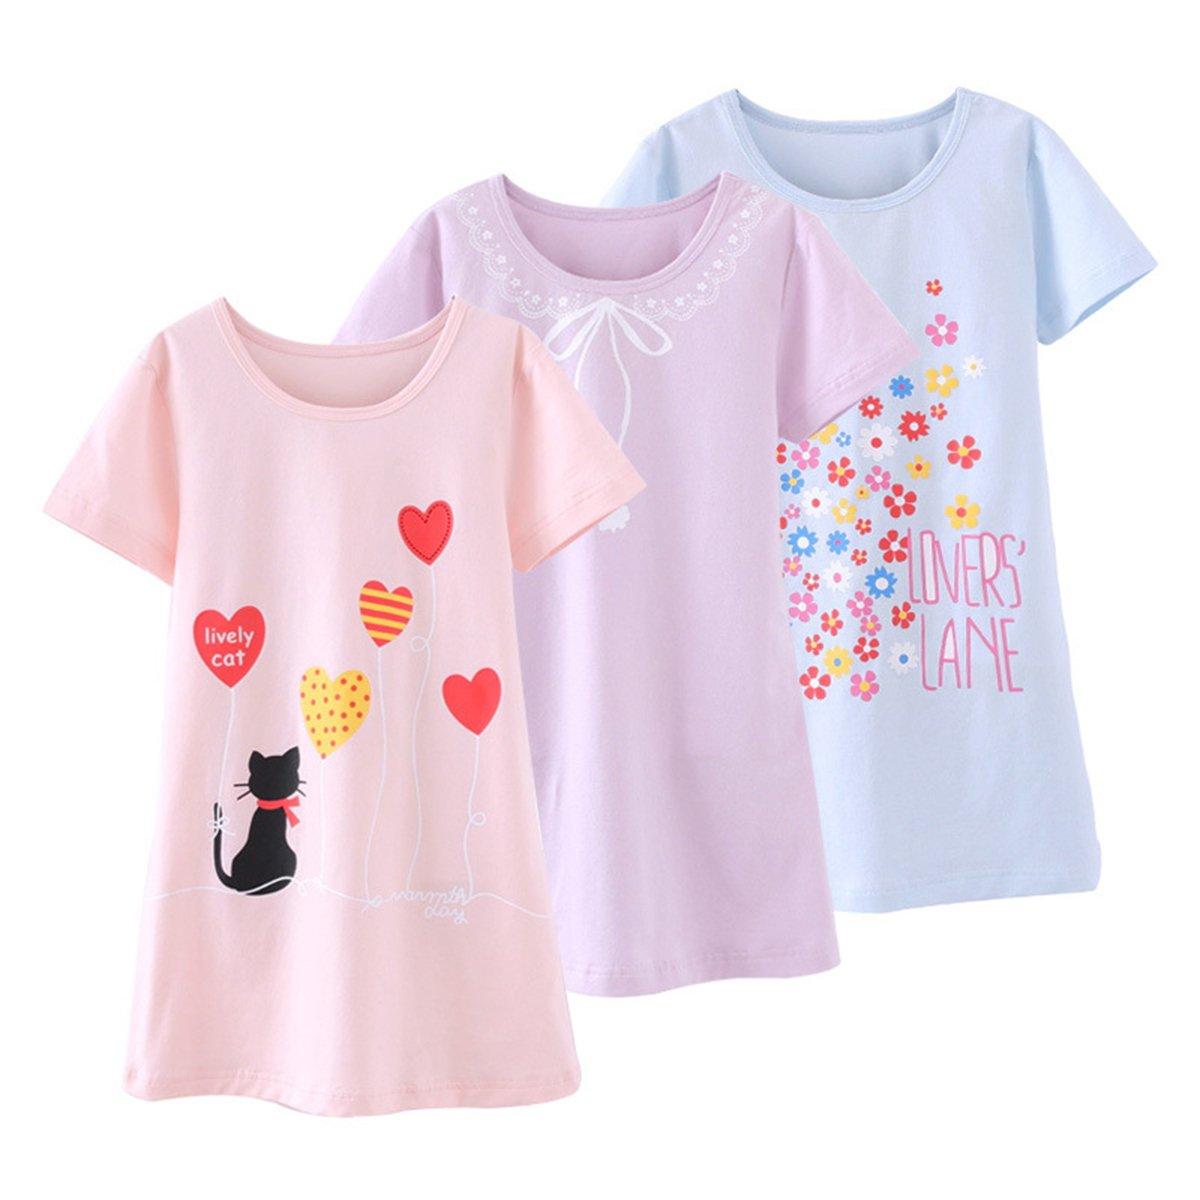 Amazon.com: KINYBABY Girls Sleepwear Cute Cotton Nightgown Pajamas Nightwear Sleep Dress: Clothing